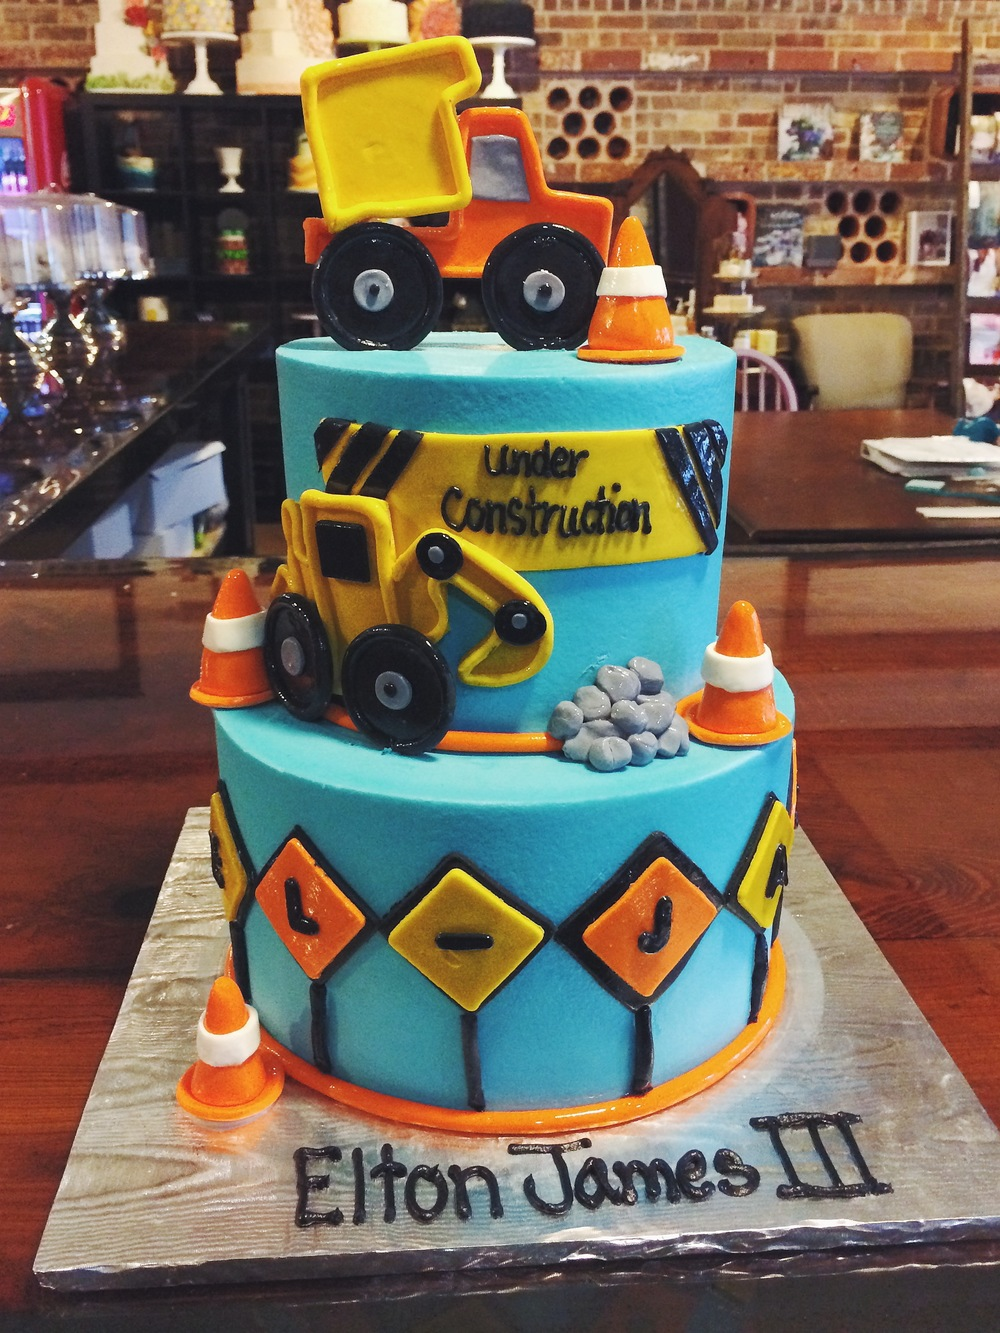 construction-themed-party-cake-sugarbeesweets.JPG